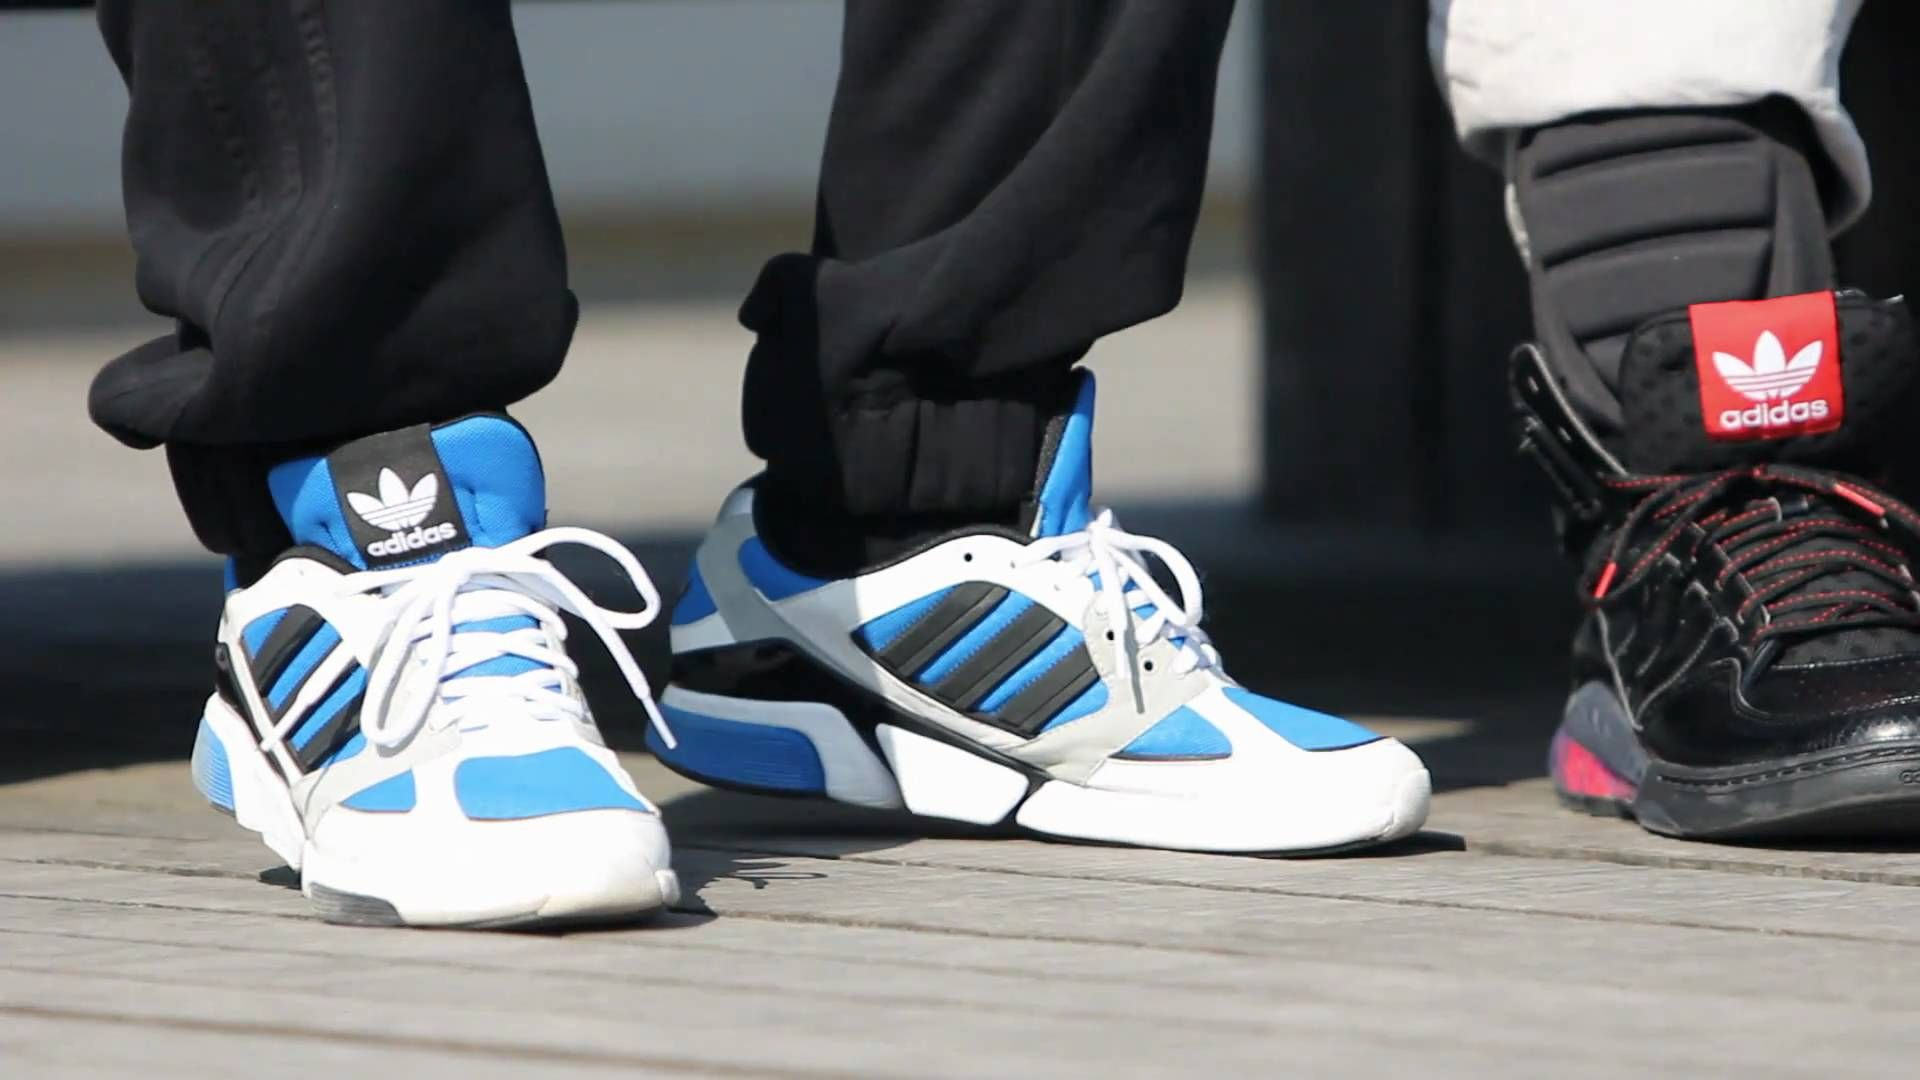 Adidas Creates Musical Tap Shoes for Break Dancers - featuring Les Twins  (Criminalz) and Bboy Lamine & Mounir (Vagabonds)